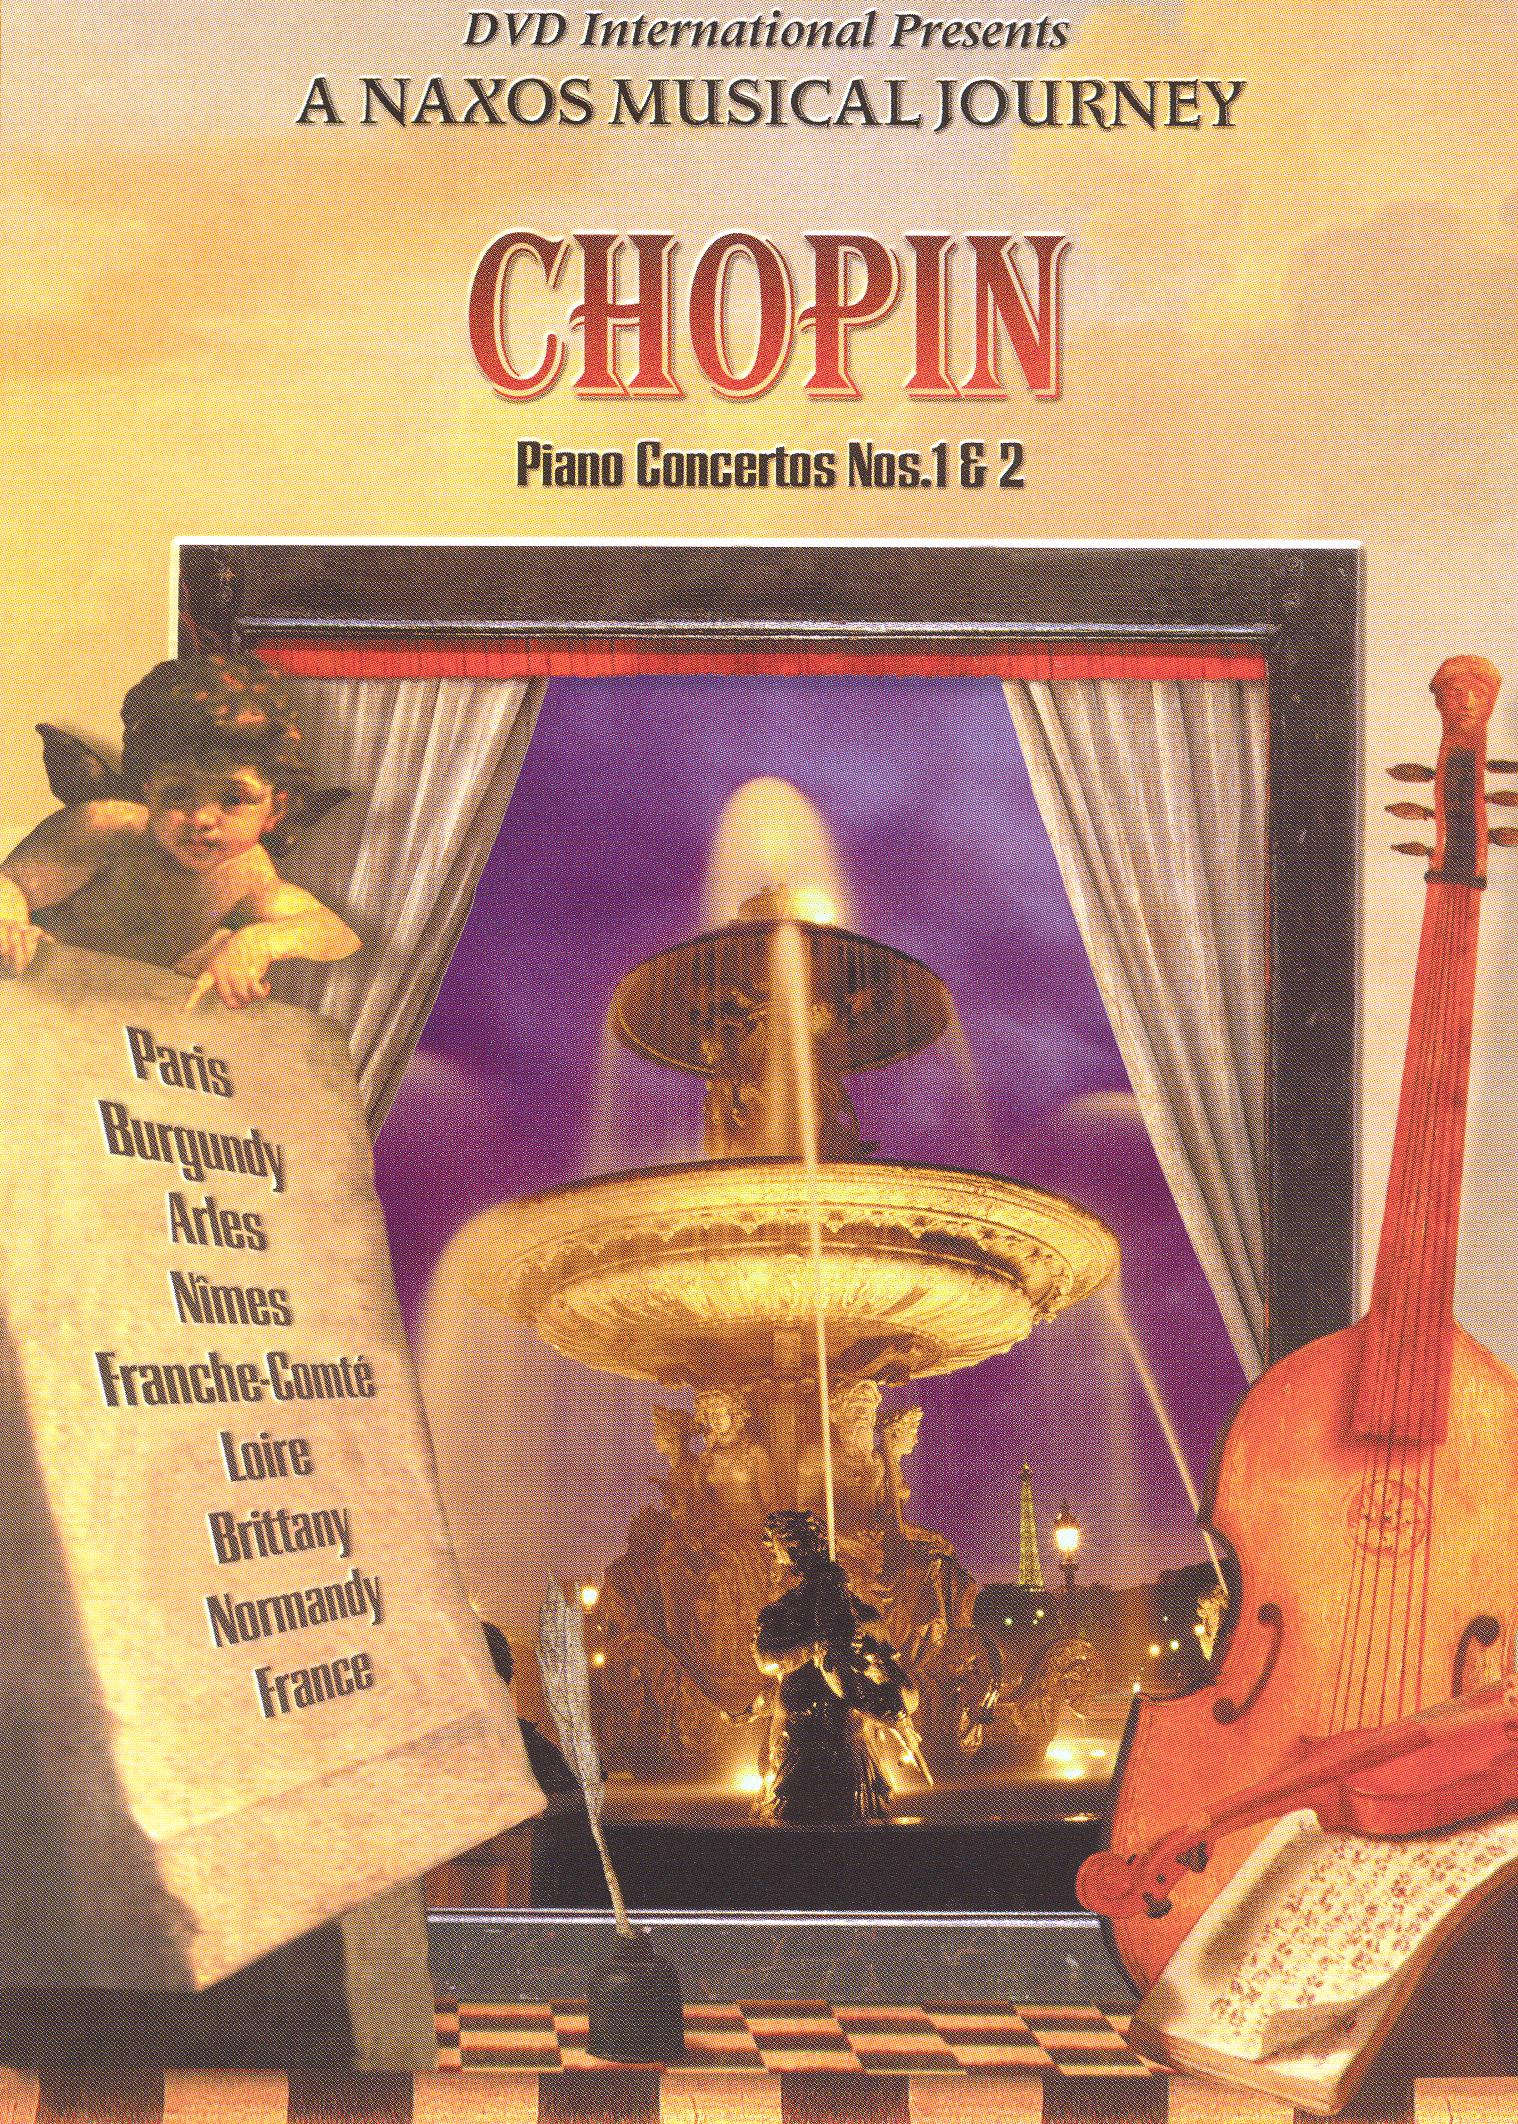 A Naxos Musical Journey: Chopin - Piano Concertos 1 & 2